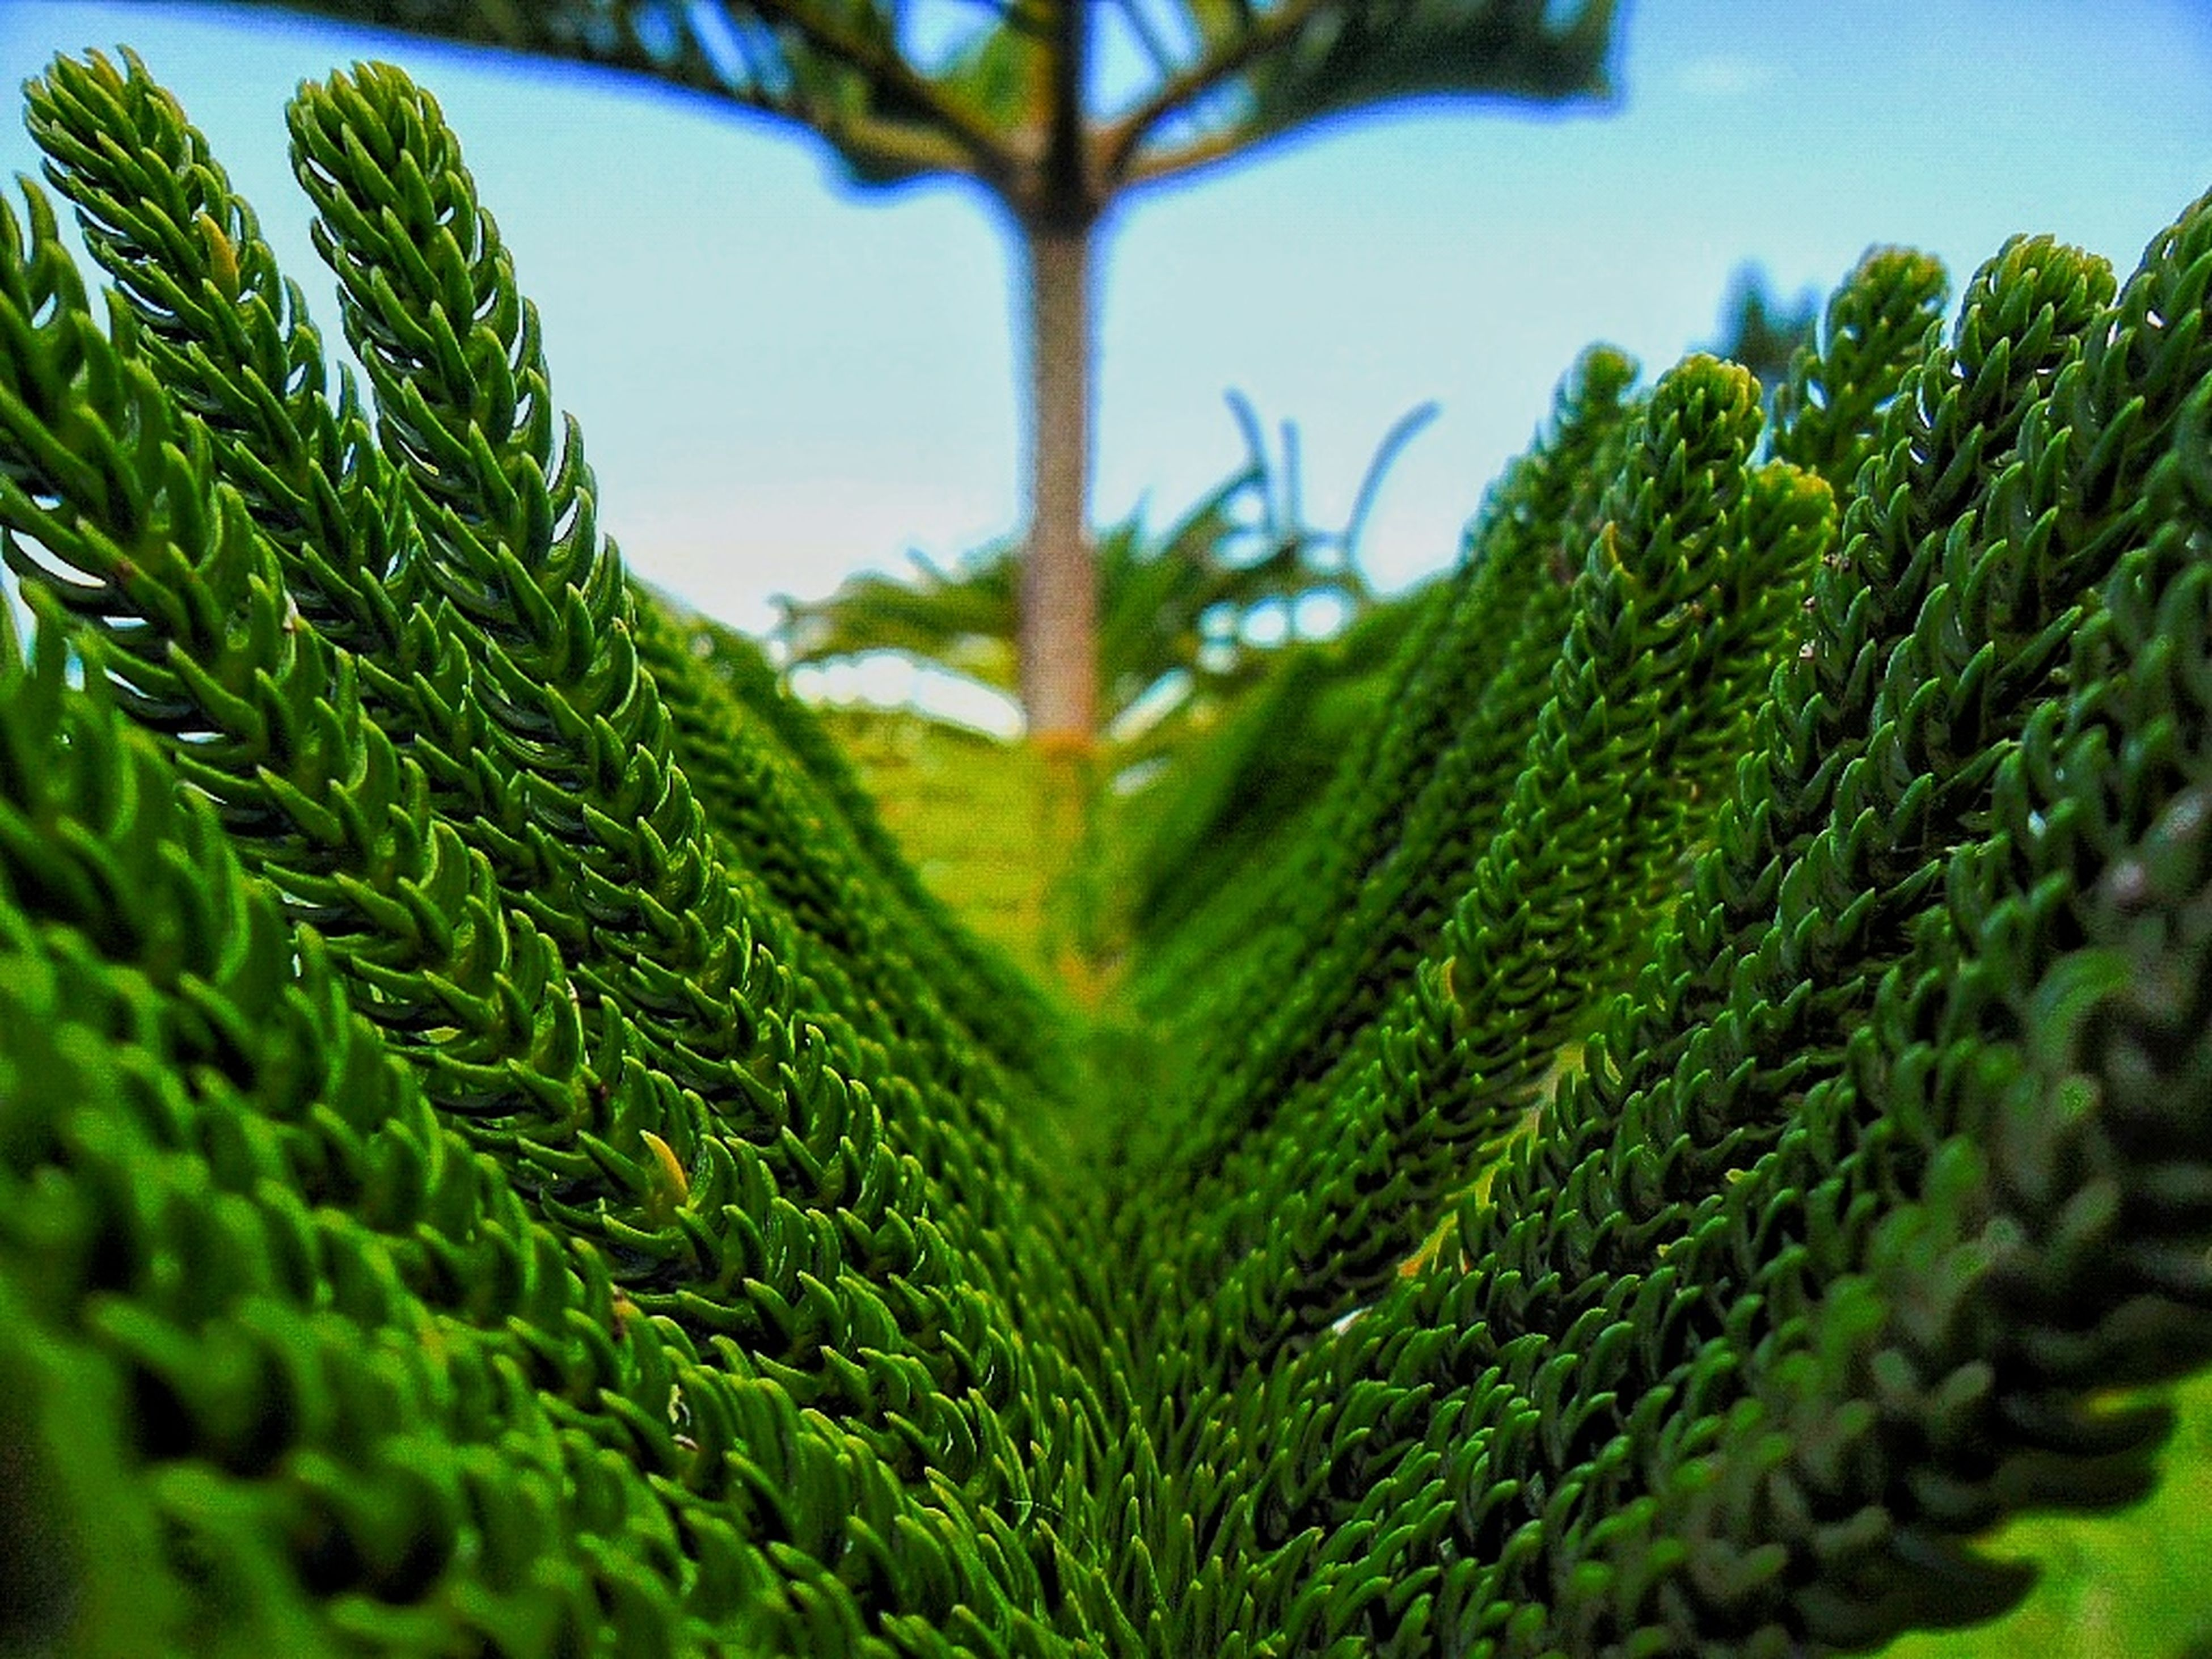 green color, growth, nature, beauty in nature, plant, no people, close-up, day, field, outdoors, freshness, sky, fragility